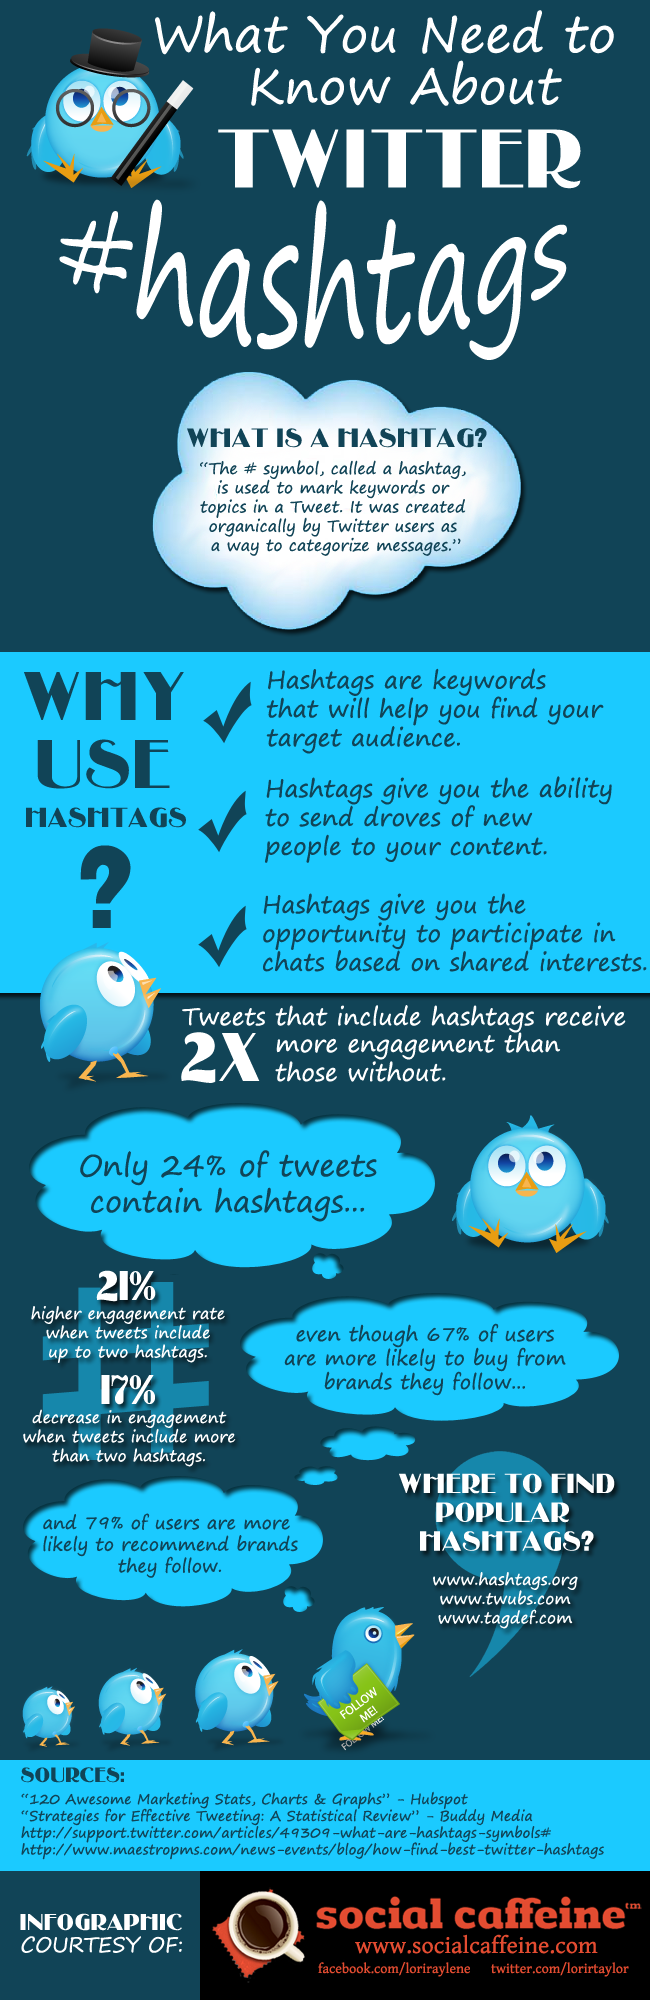 RP @Denise Mathews: What You Need to Know about #Twitter #Hashtags [infographic] | #socialmedia